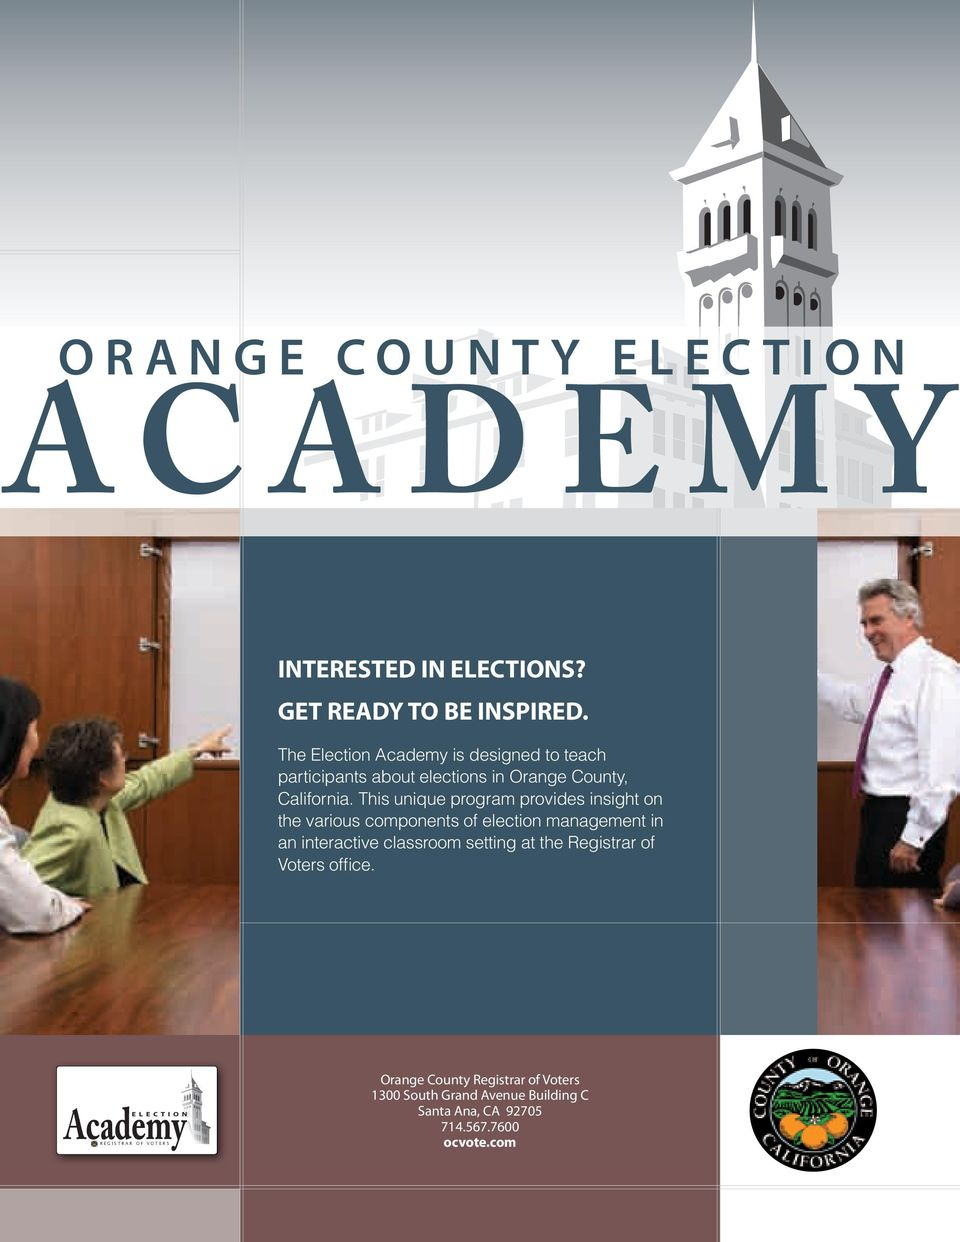 This unique program provides insight on the various components of election management in an interactive classroom setting at